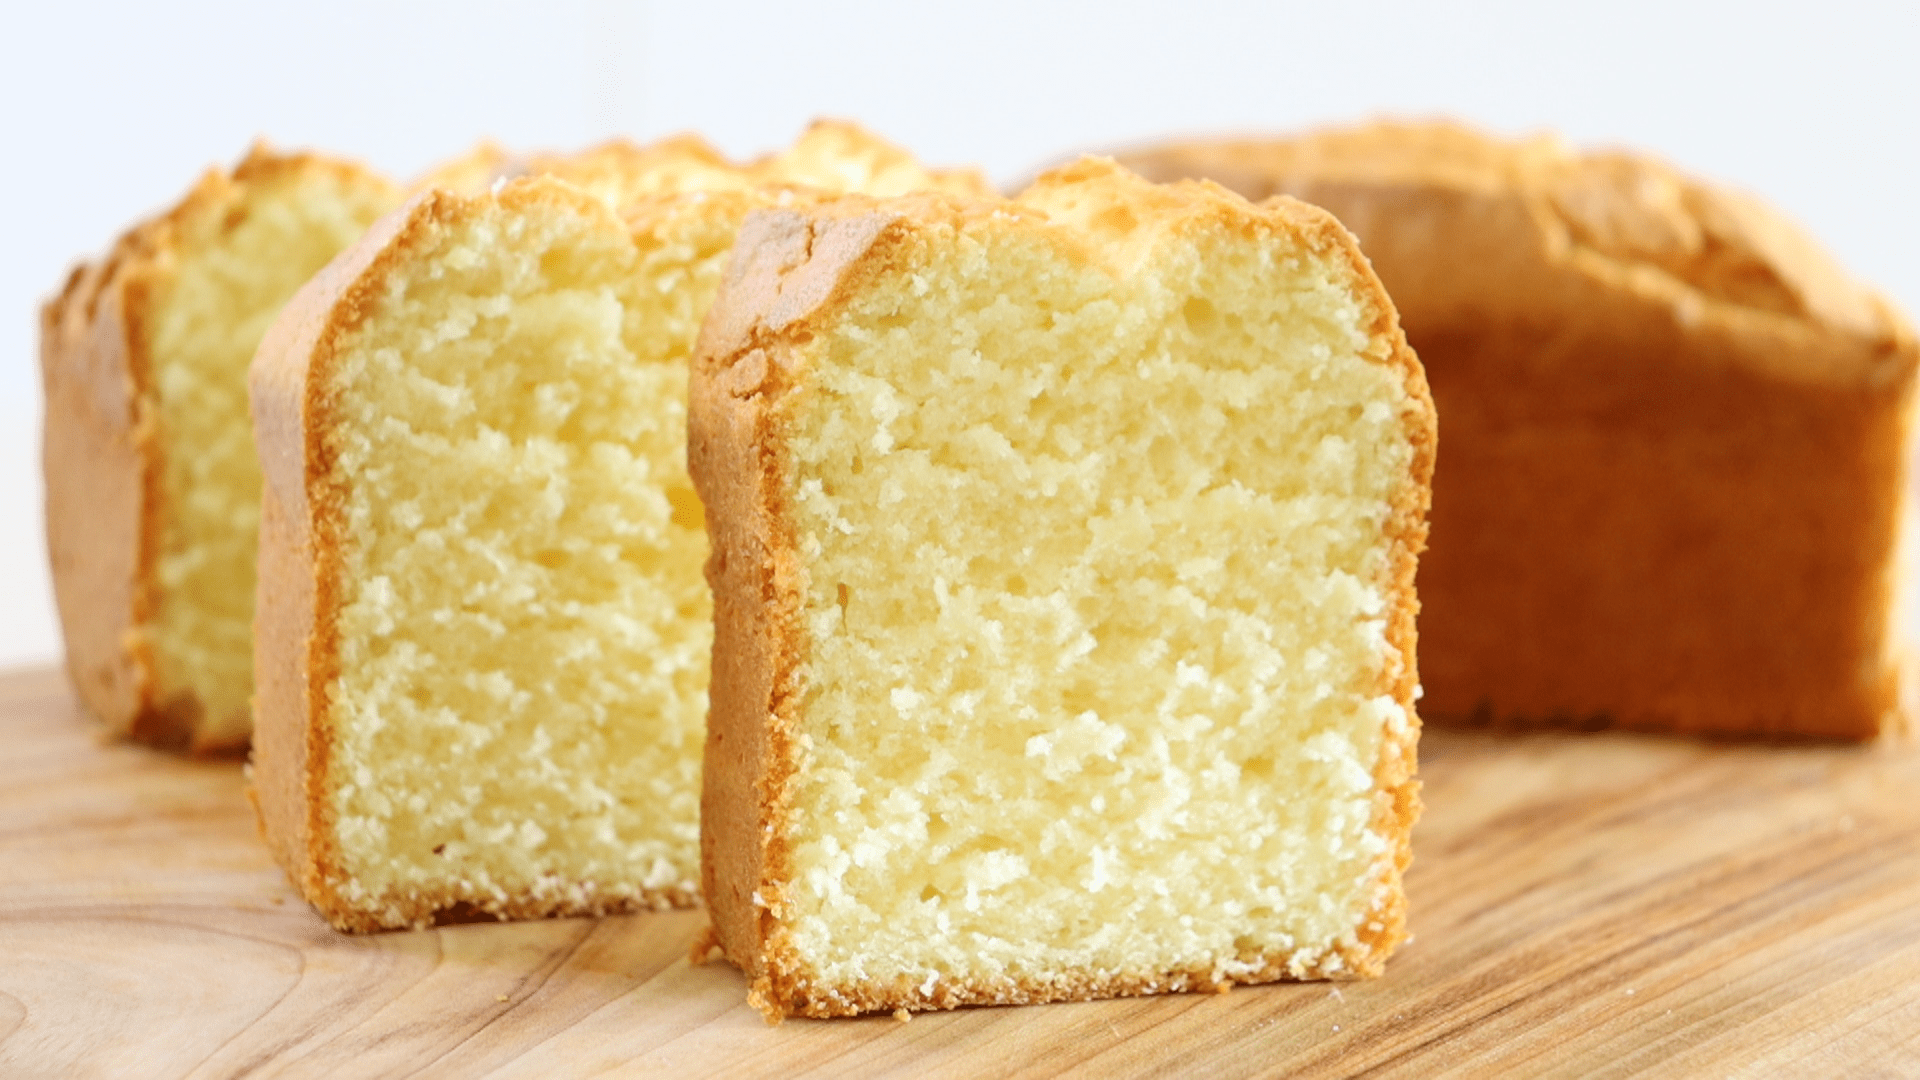 How To Make Very Soft Sour Cream Pound Cake Mommy Oven In 2020 Sour Cream Pound Cake Sour Cream Recipes Pound Cake Recipes